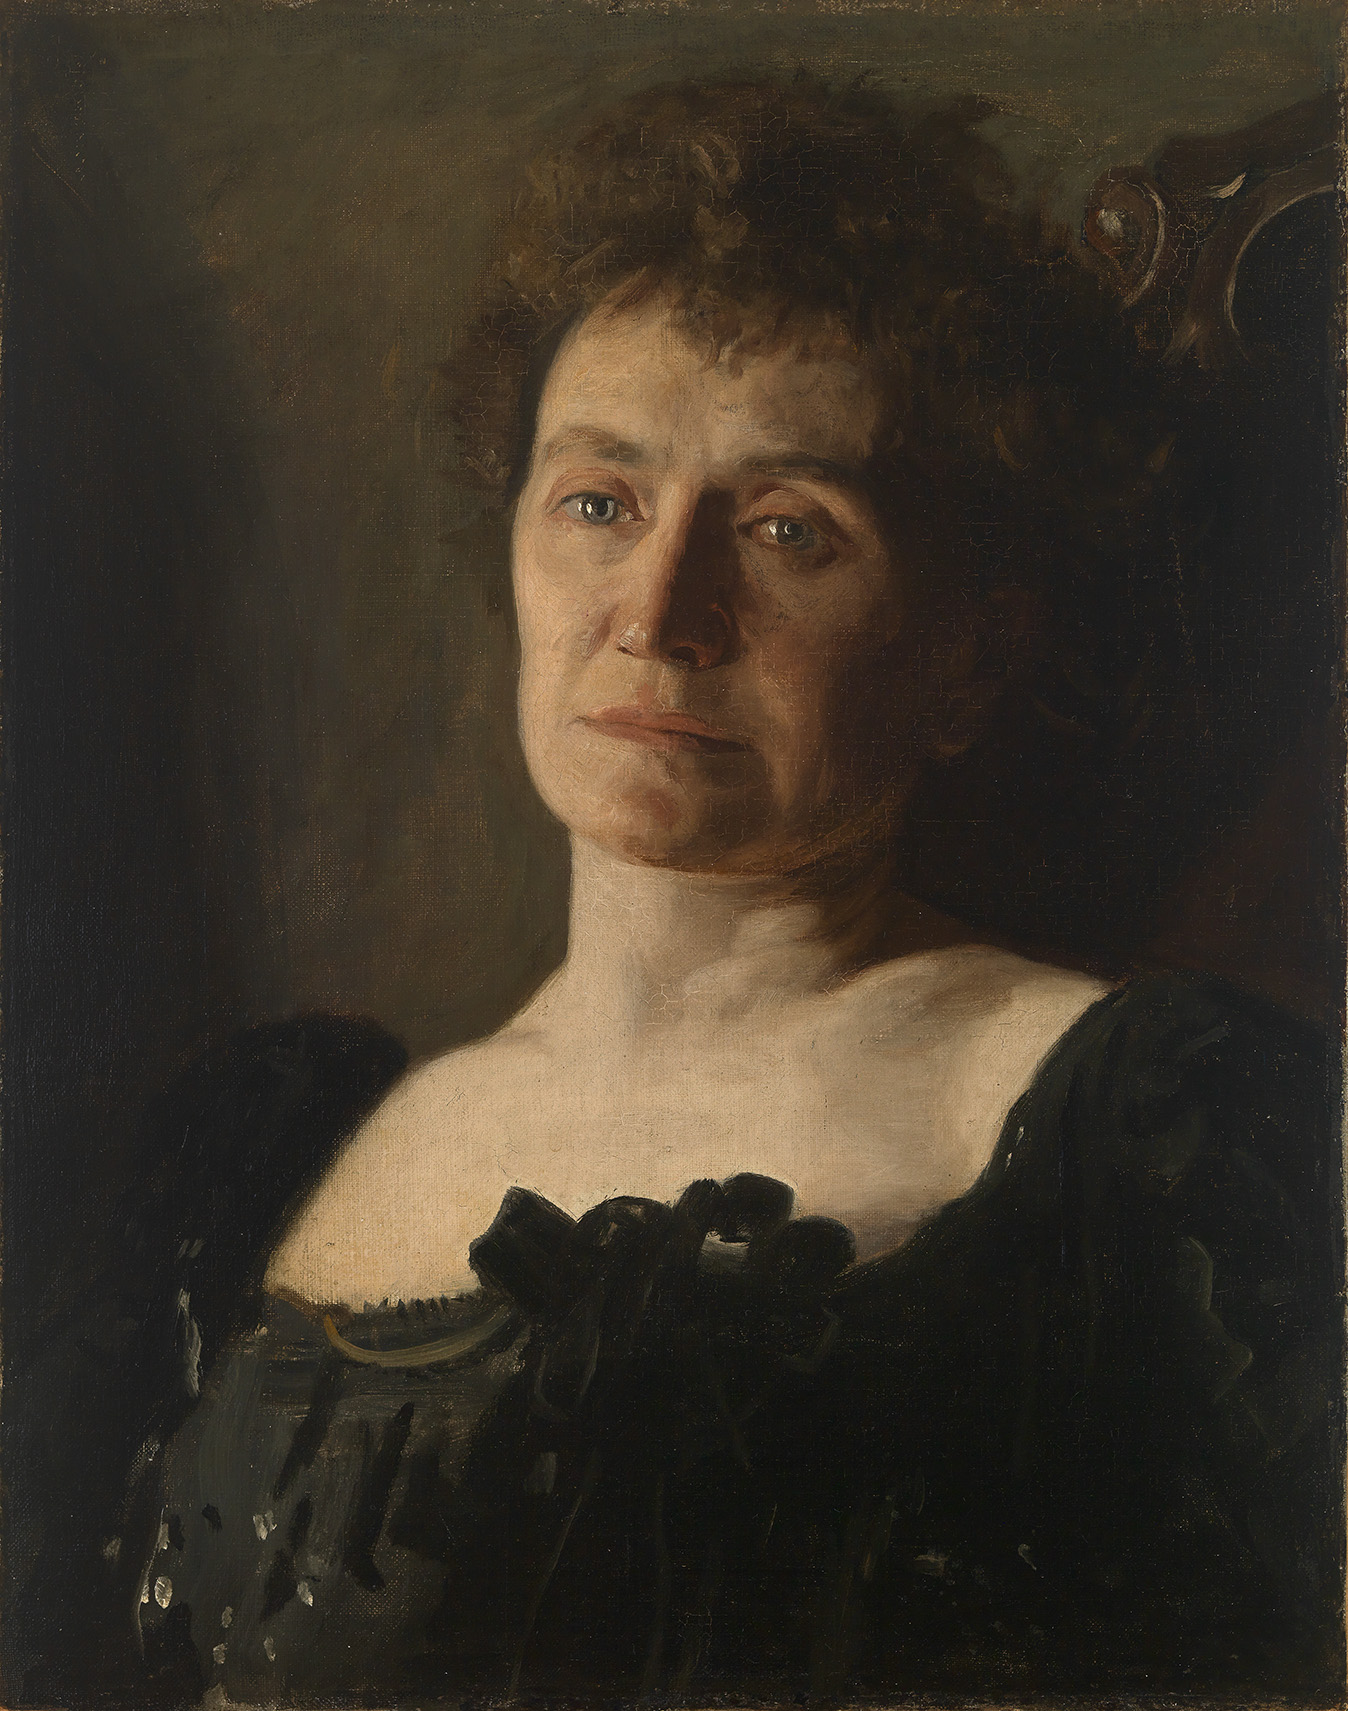 Eakins, Mrs. Edith Mahon